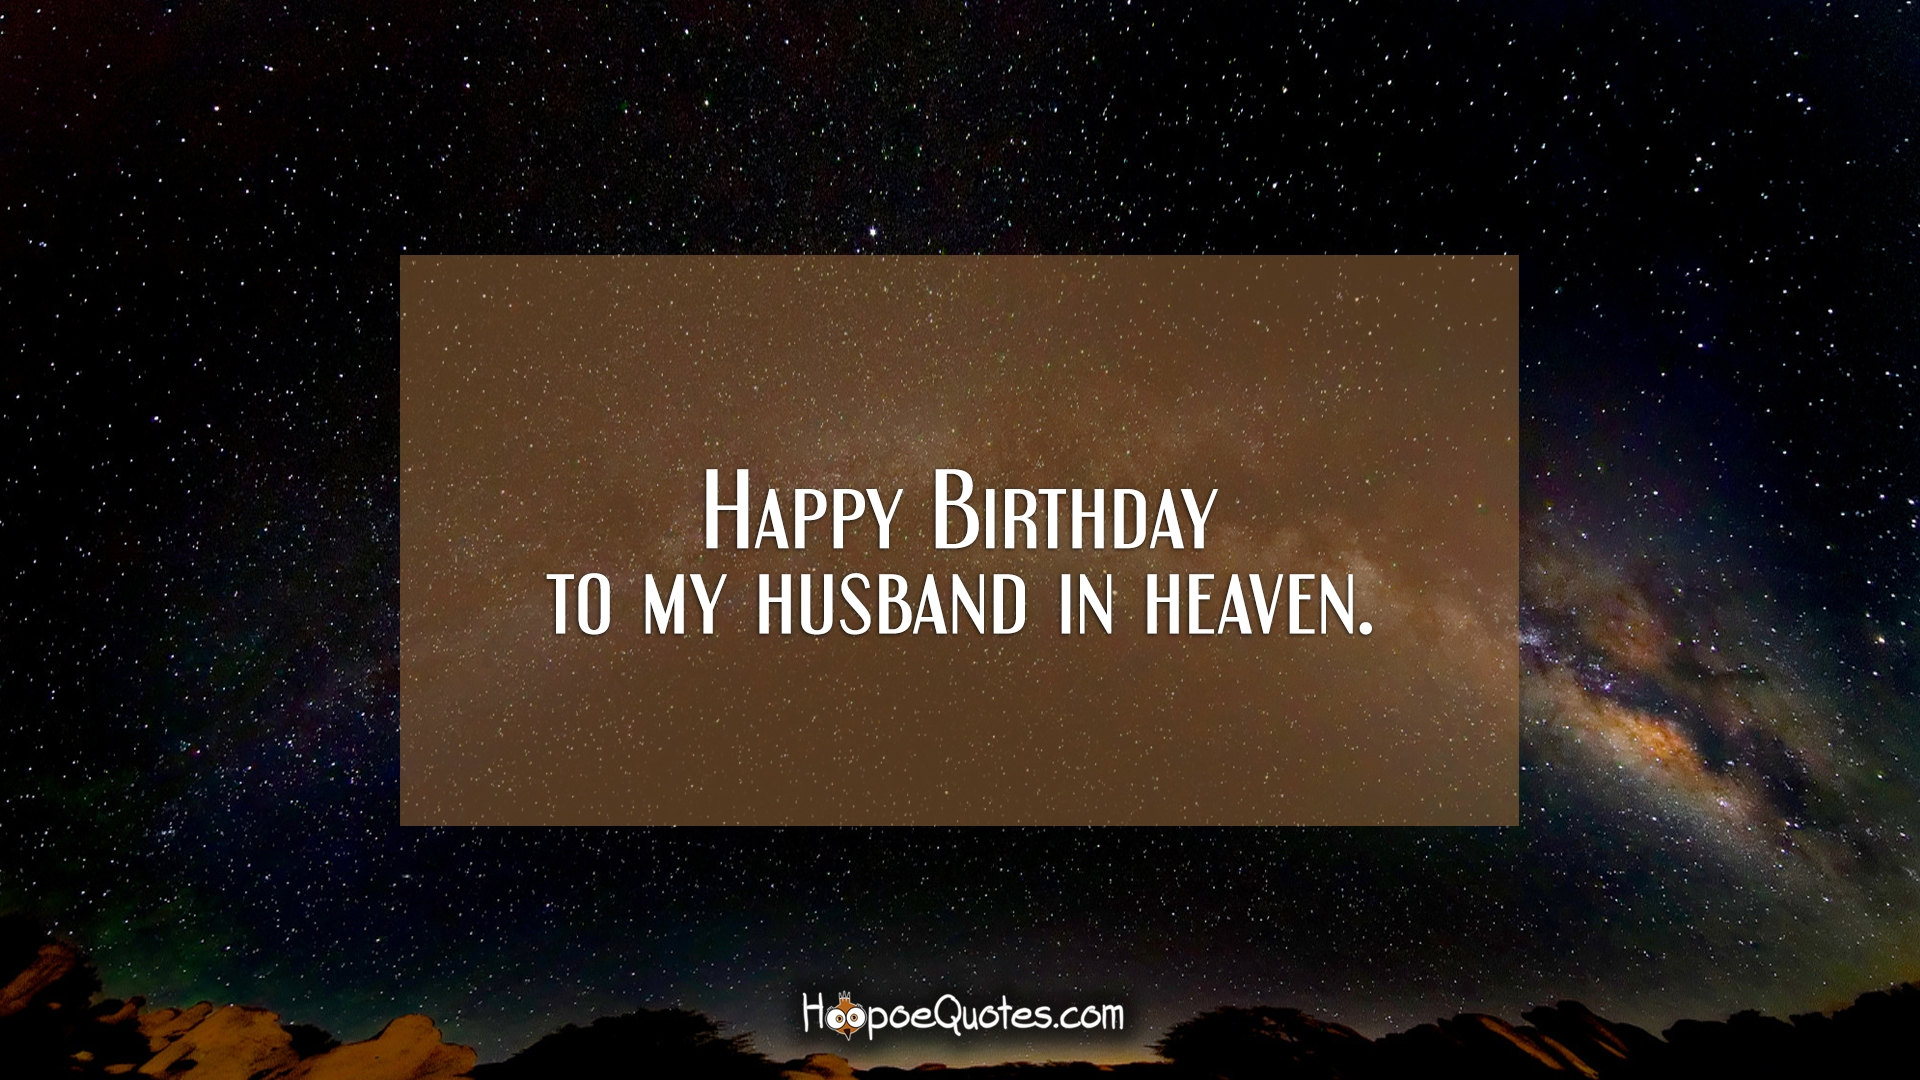 Happy Birthday To My Husband In Heaven Hoopoequotes